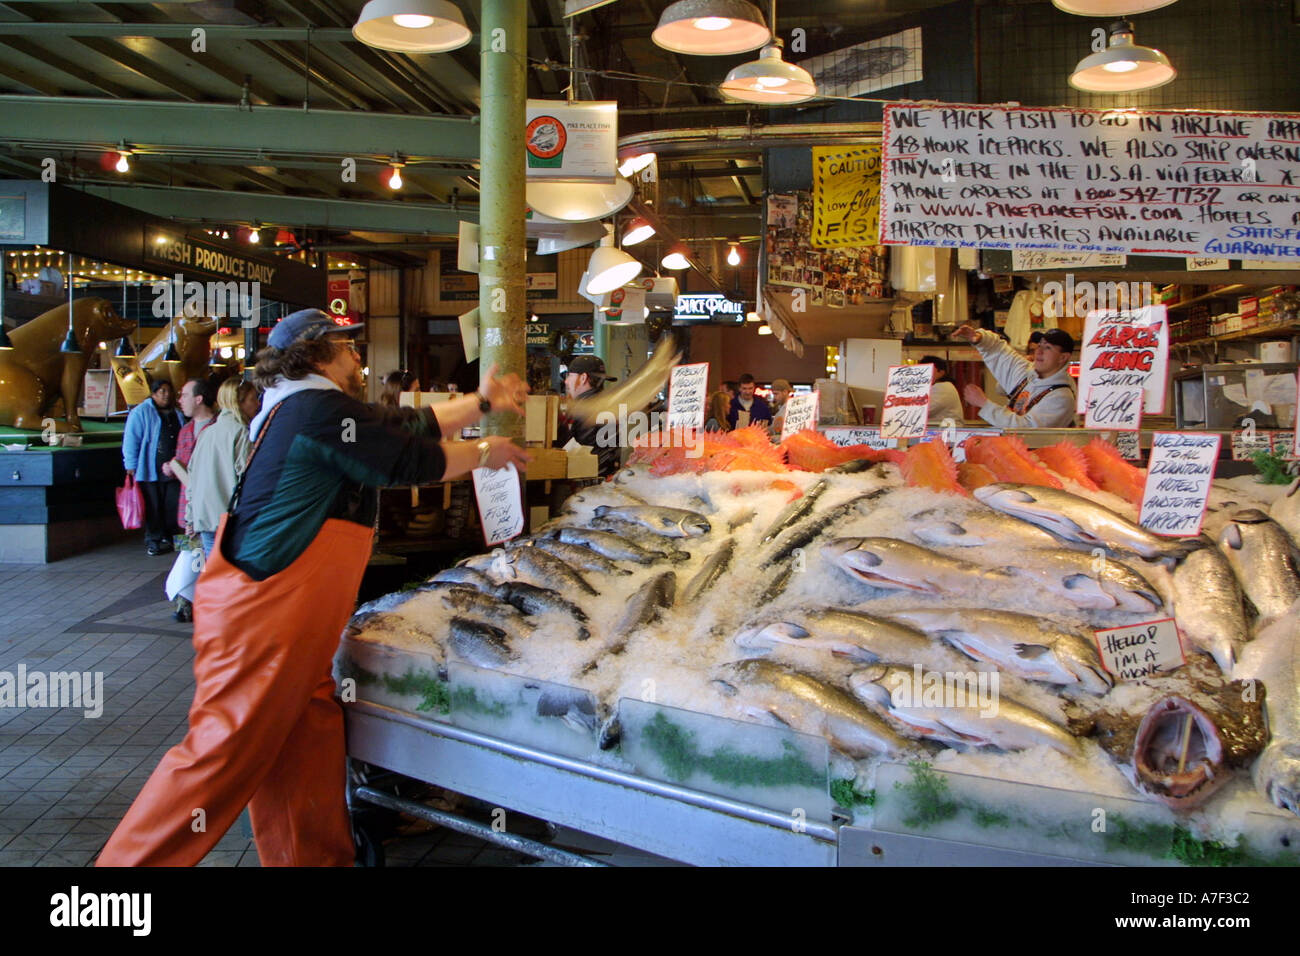 Pike place fish market fishmonger throwing fish pike place for Pike place fish market video